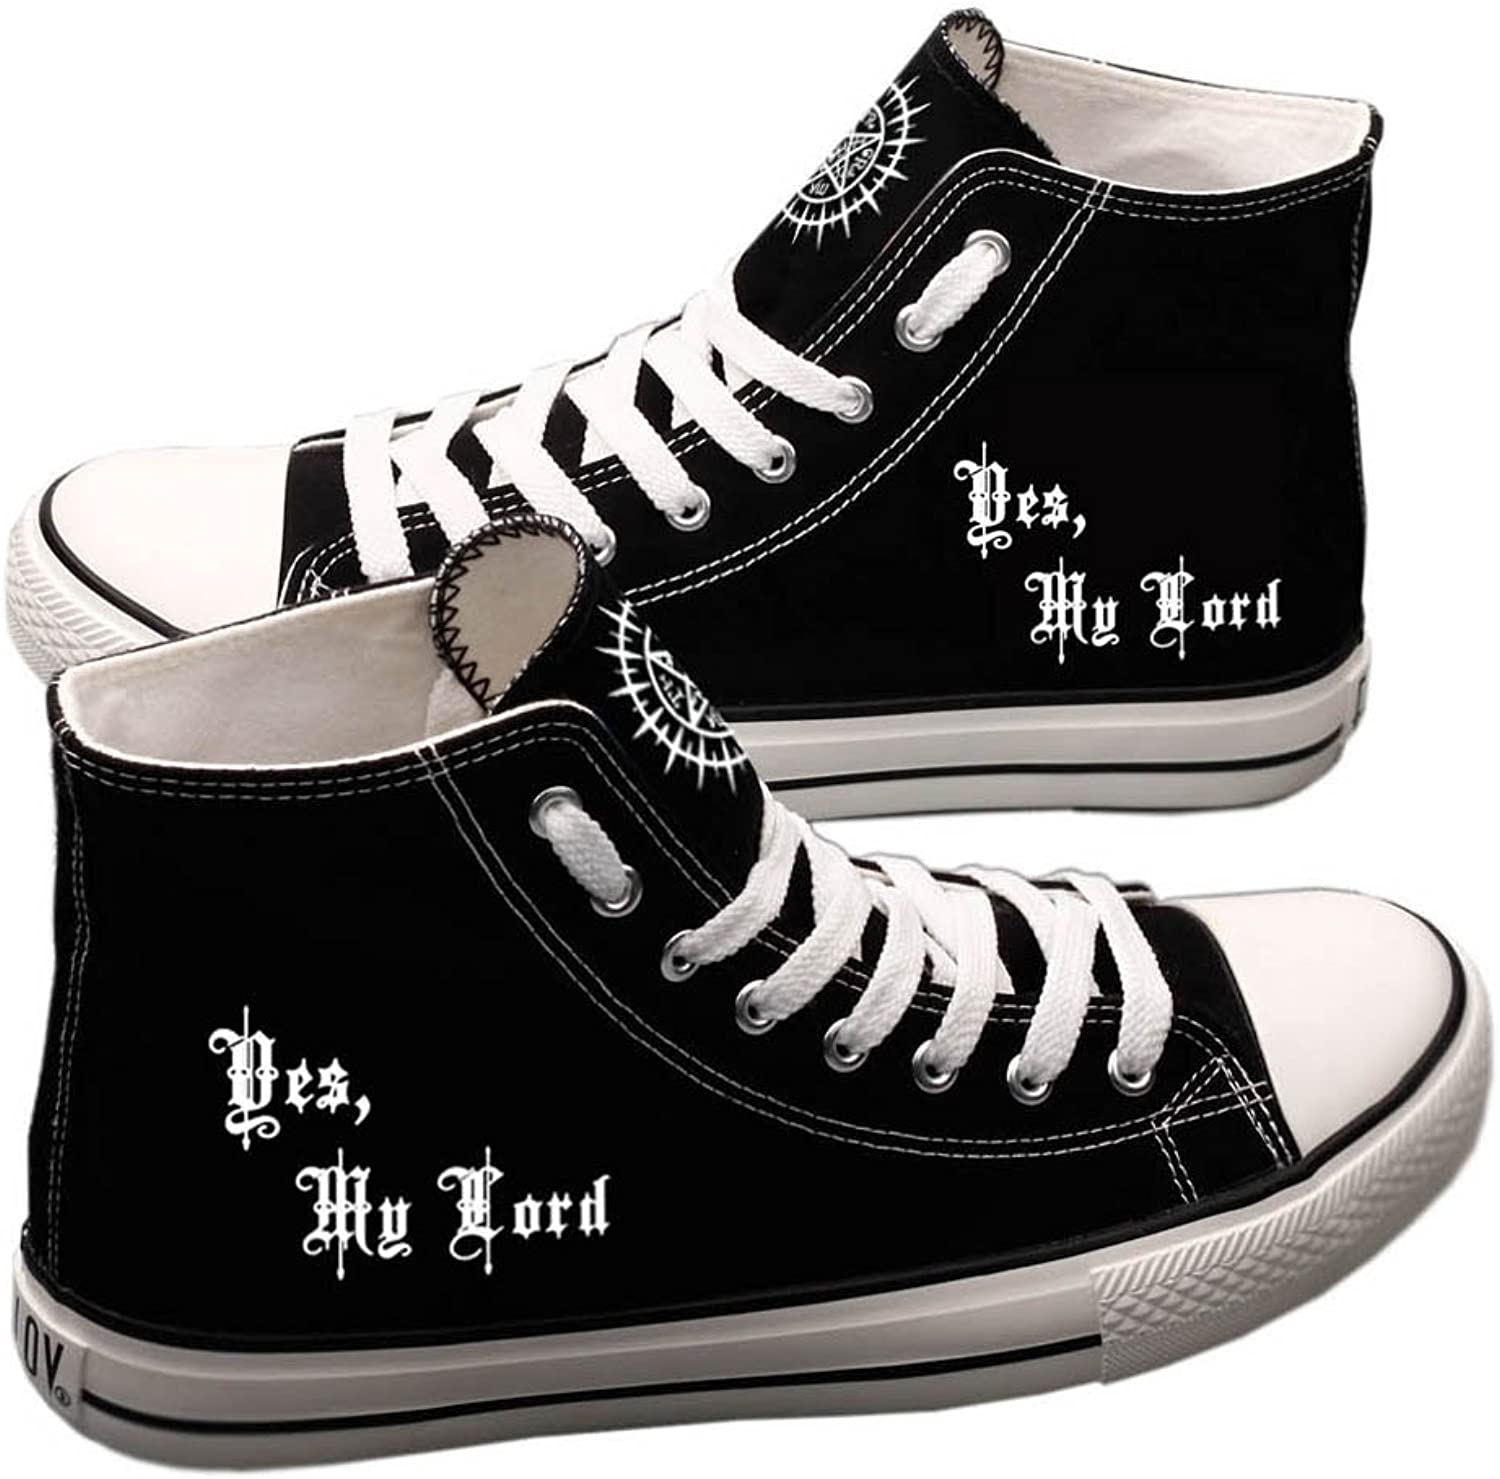 E_LOV Black Butler Kuroshitsuji Hand-Painted Canvas shoes High Top Sneakers Anime Logo Painted Cosplay shoes for Women and Men